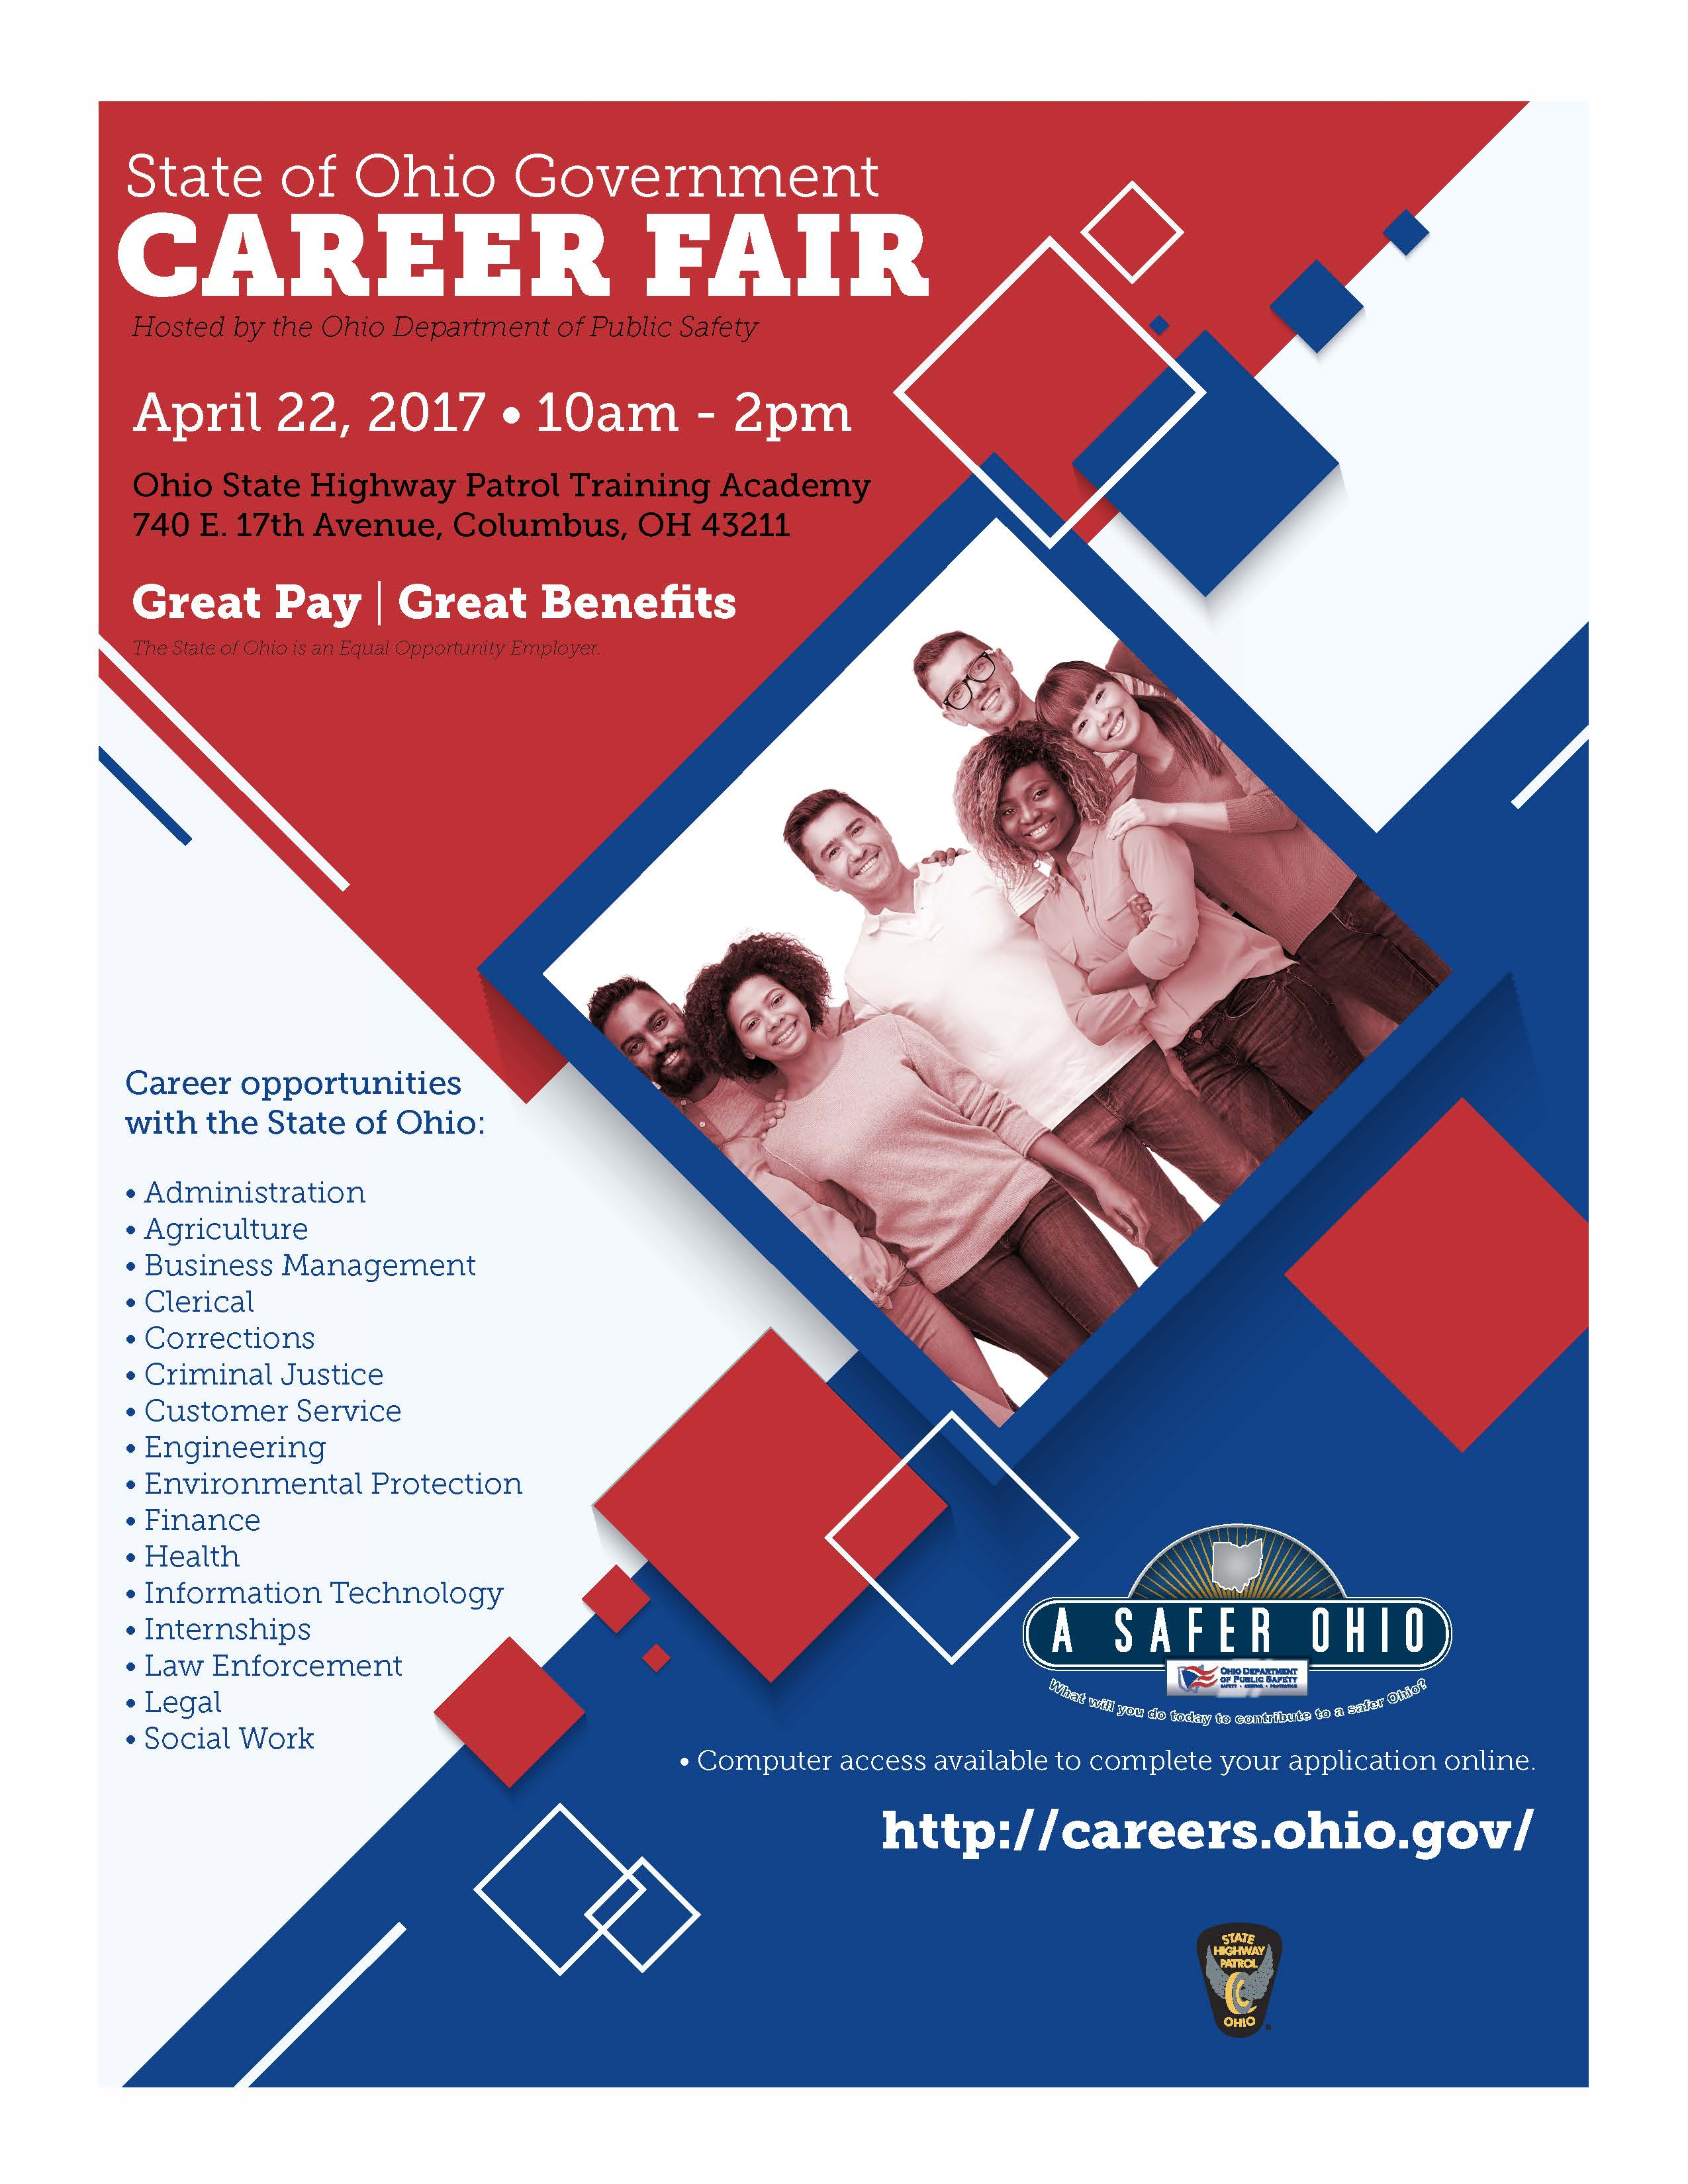 2017 State of Ohio Government Career Fair